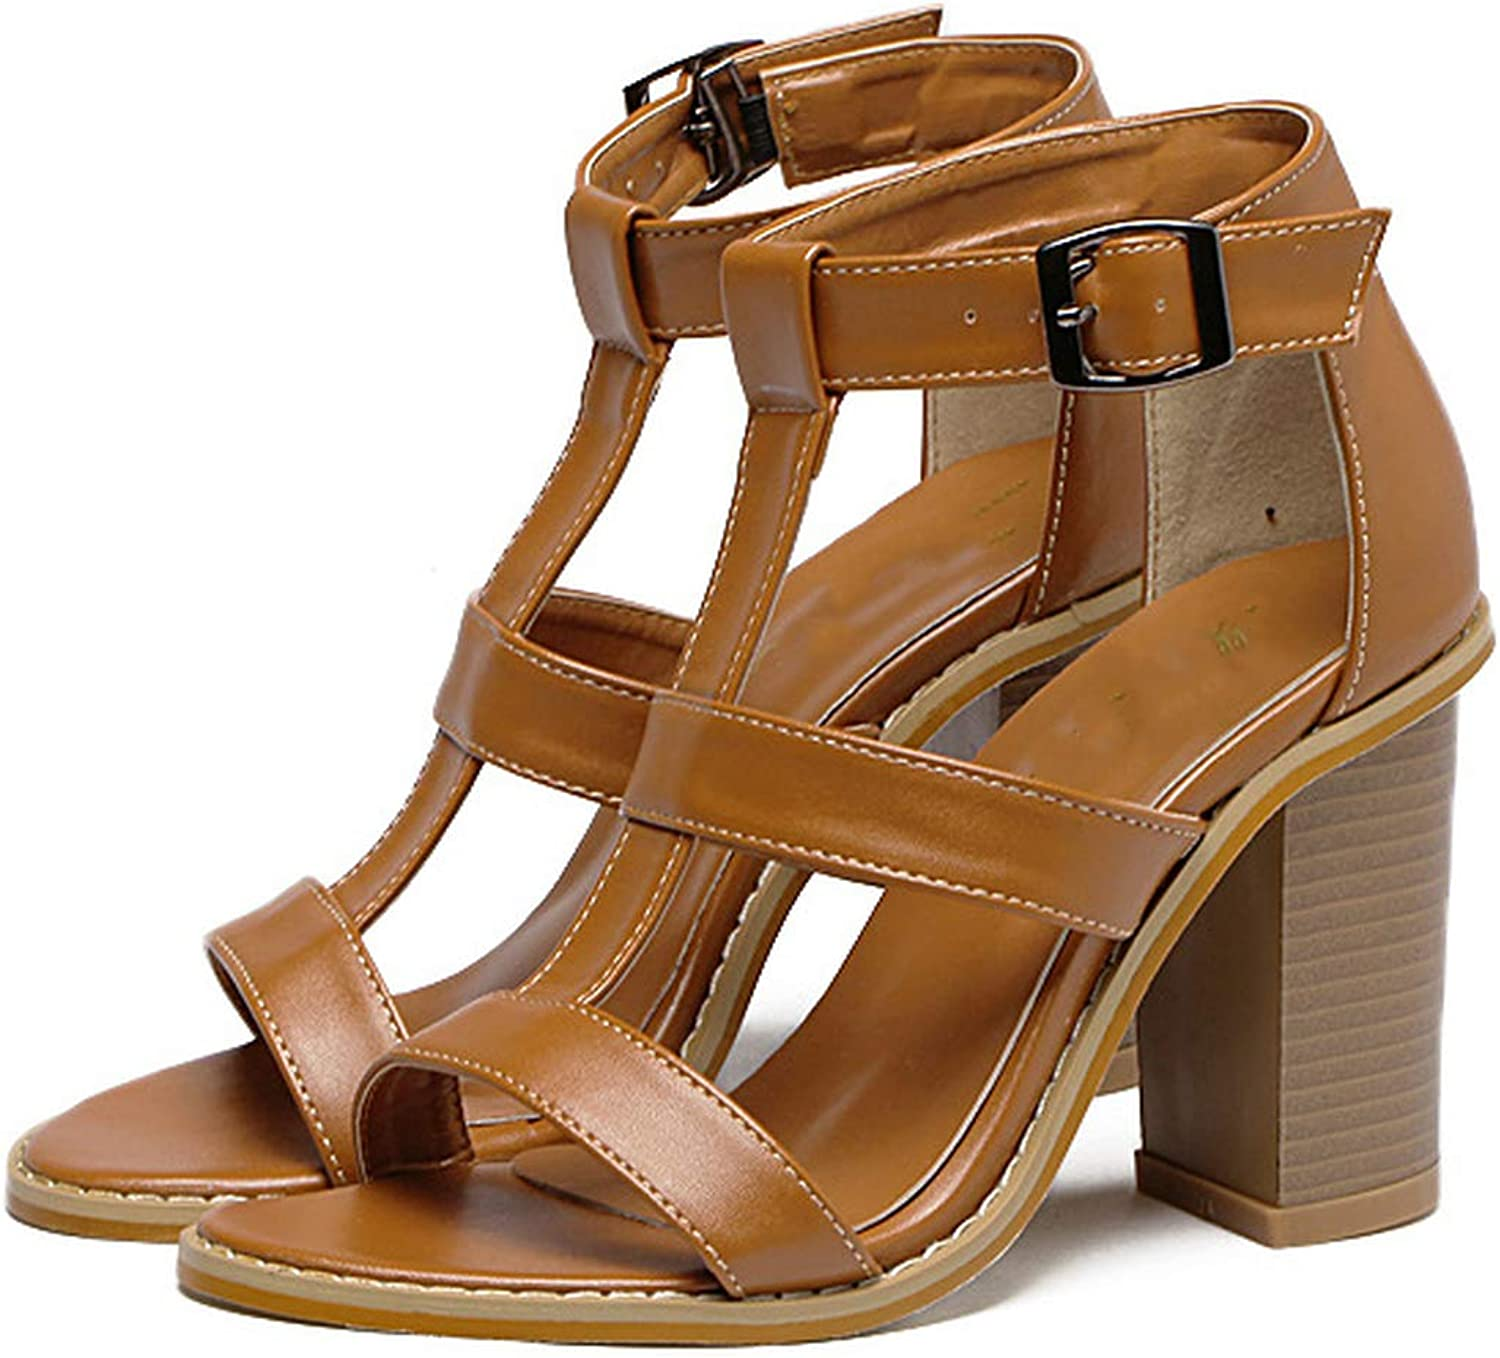 In The Winter of 2019 New Sandals Women 40 Yards Thick with High Heels,See Chart,5